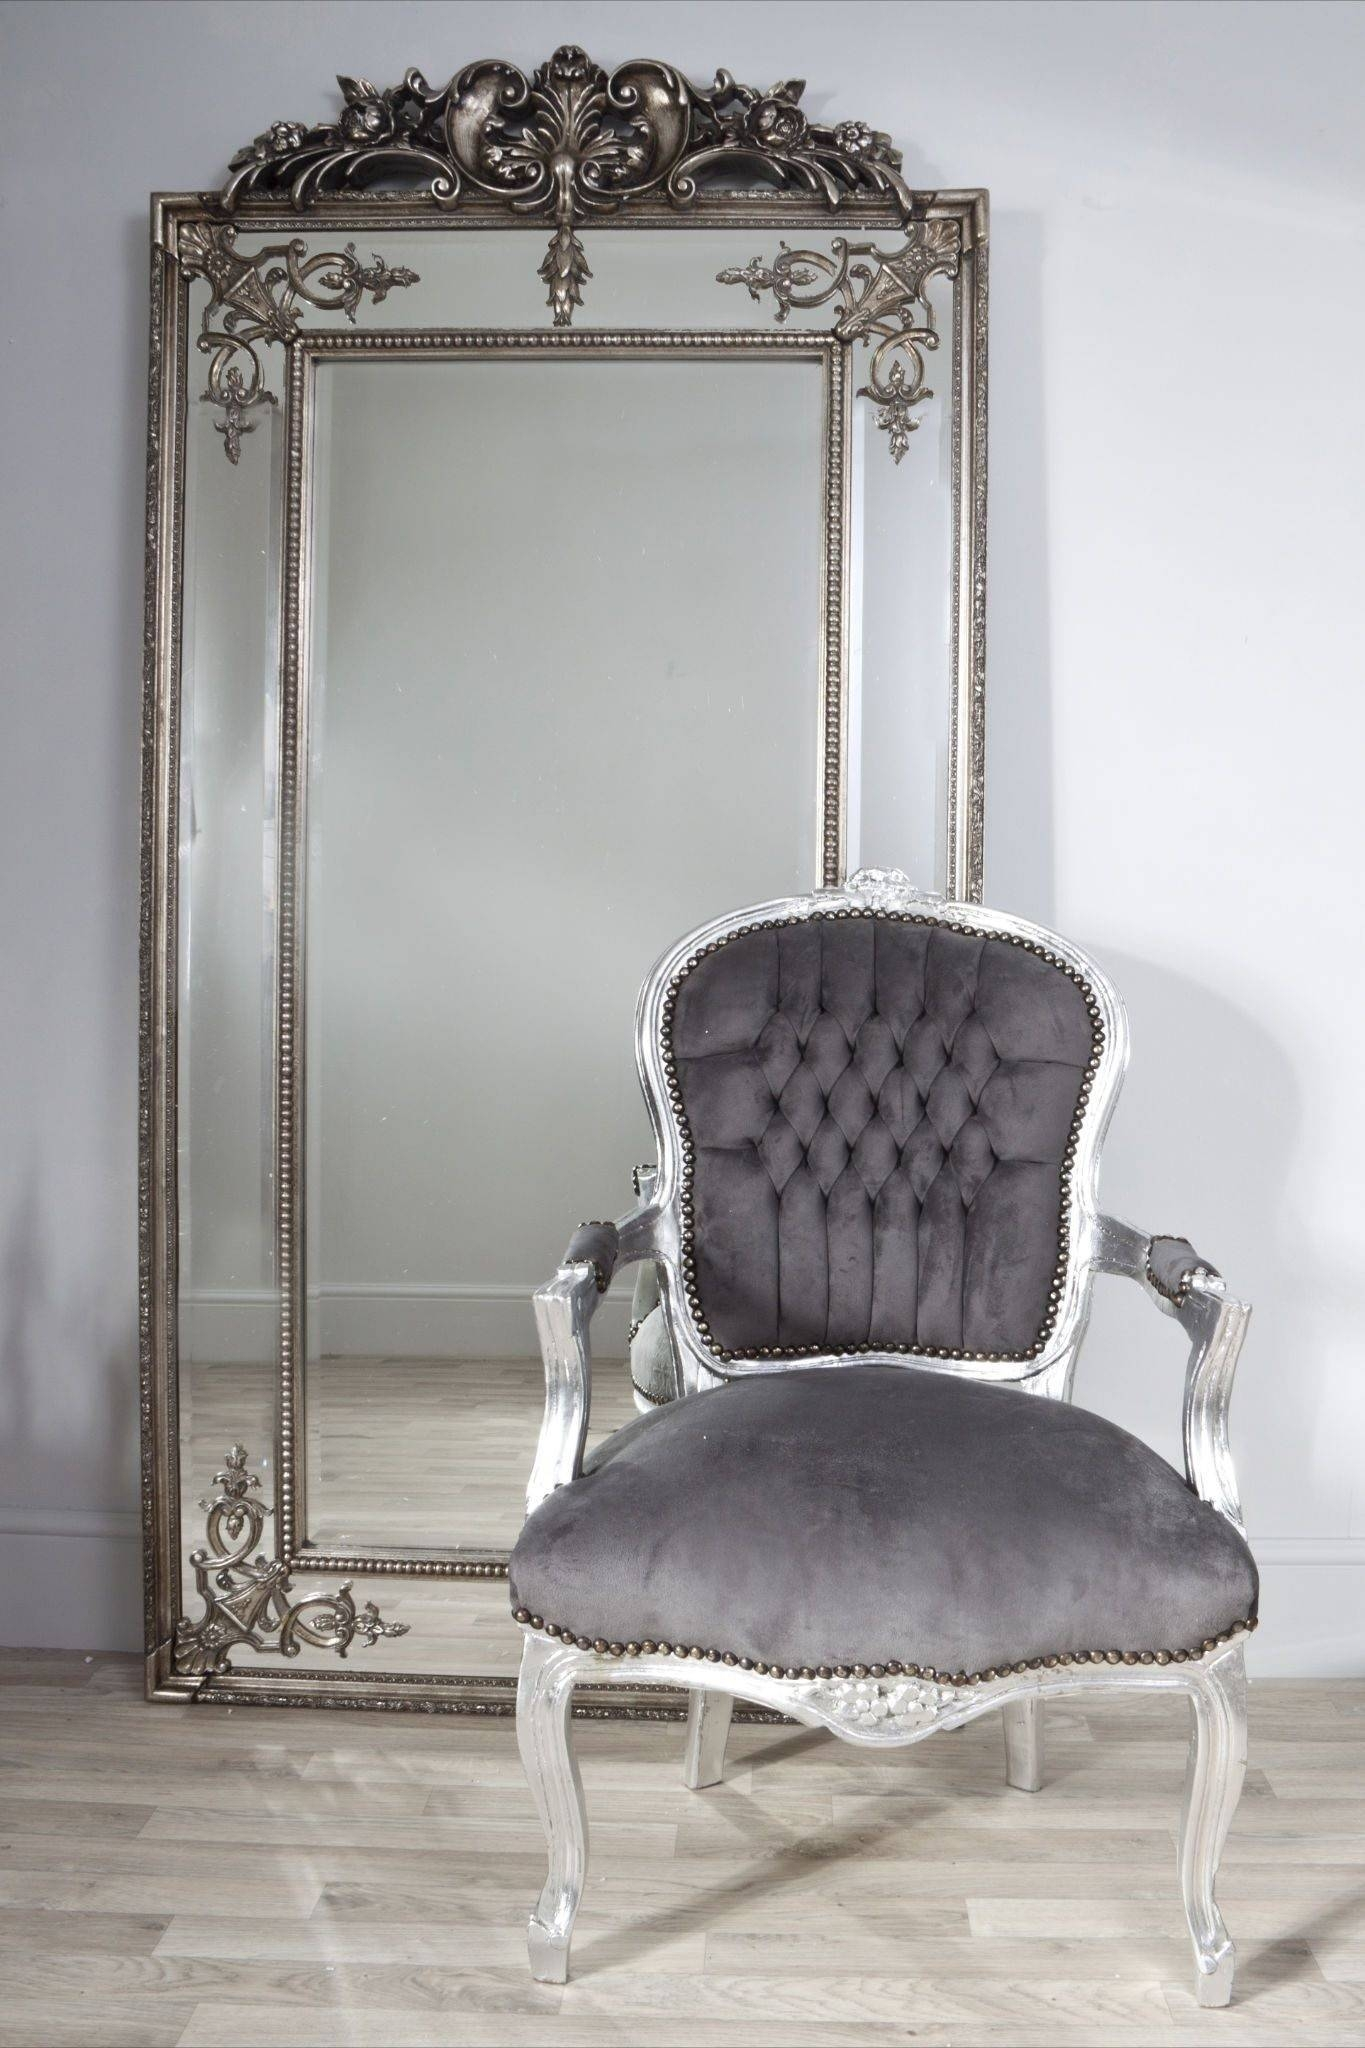 Interior & Decoration: Ornate Mirrors For Your Home Decoration throughout Large White Ornate Mirrors (Image 10 of 25)